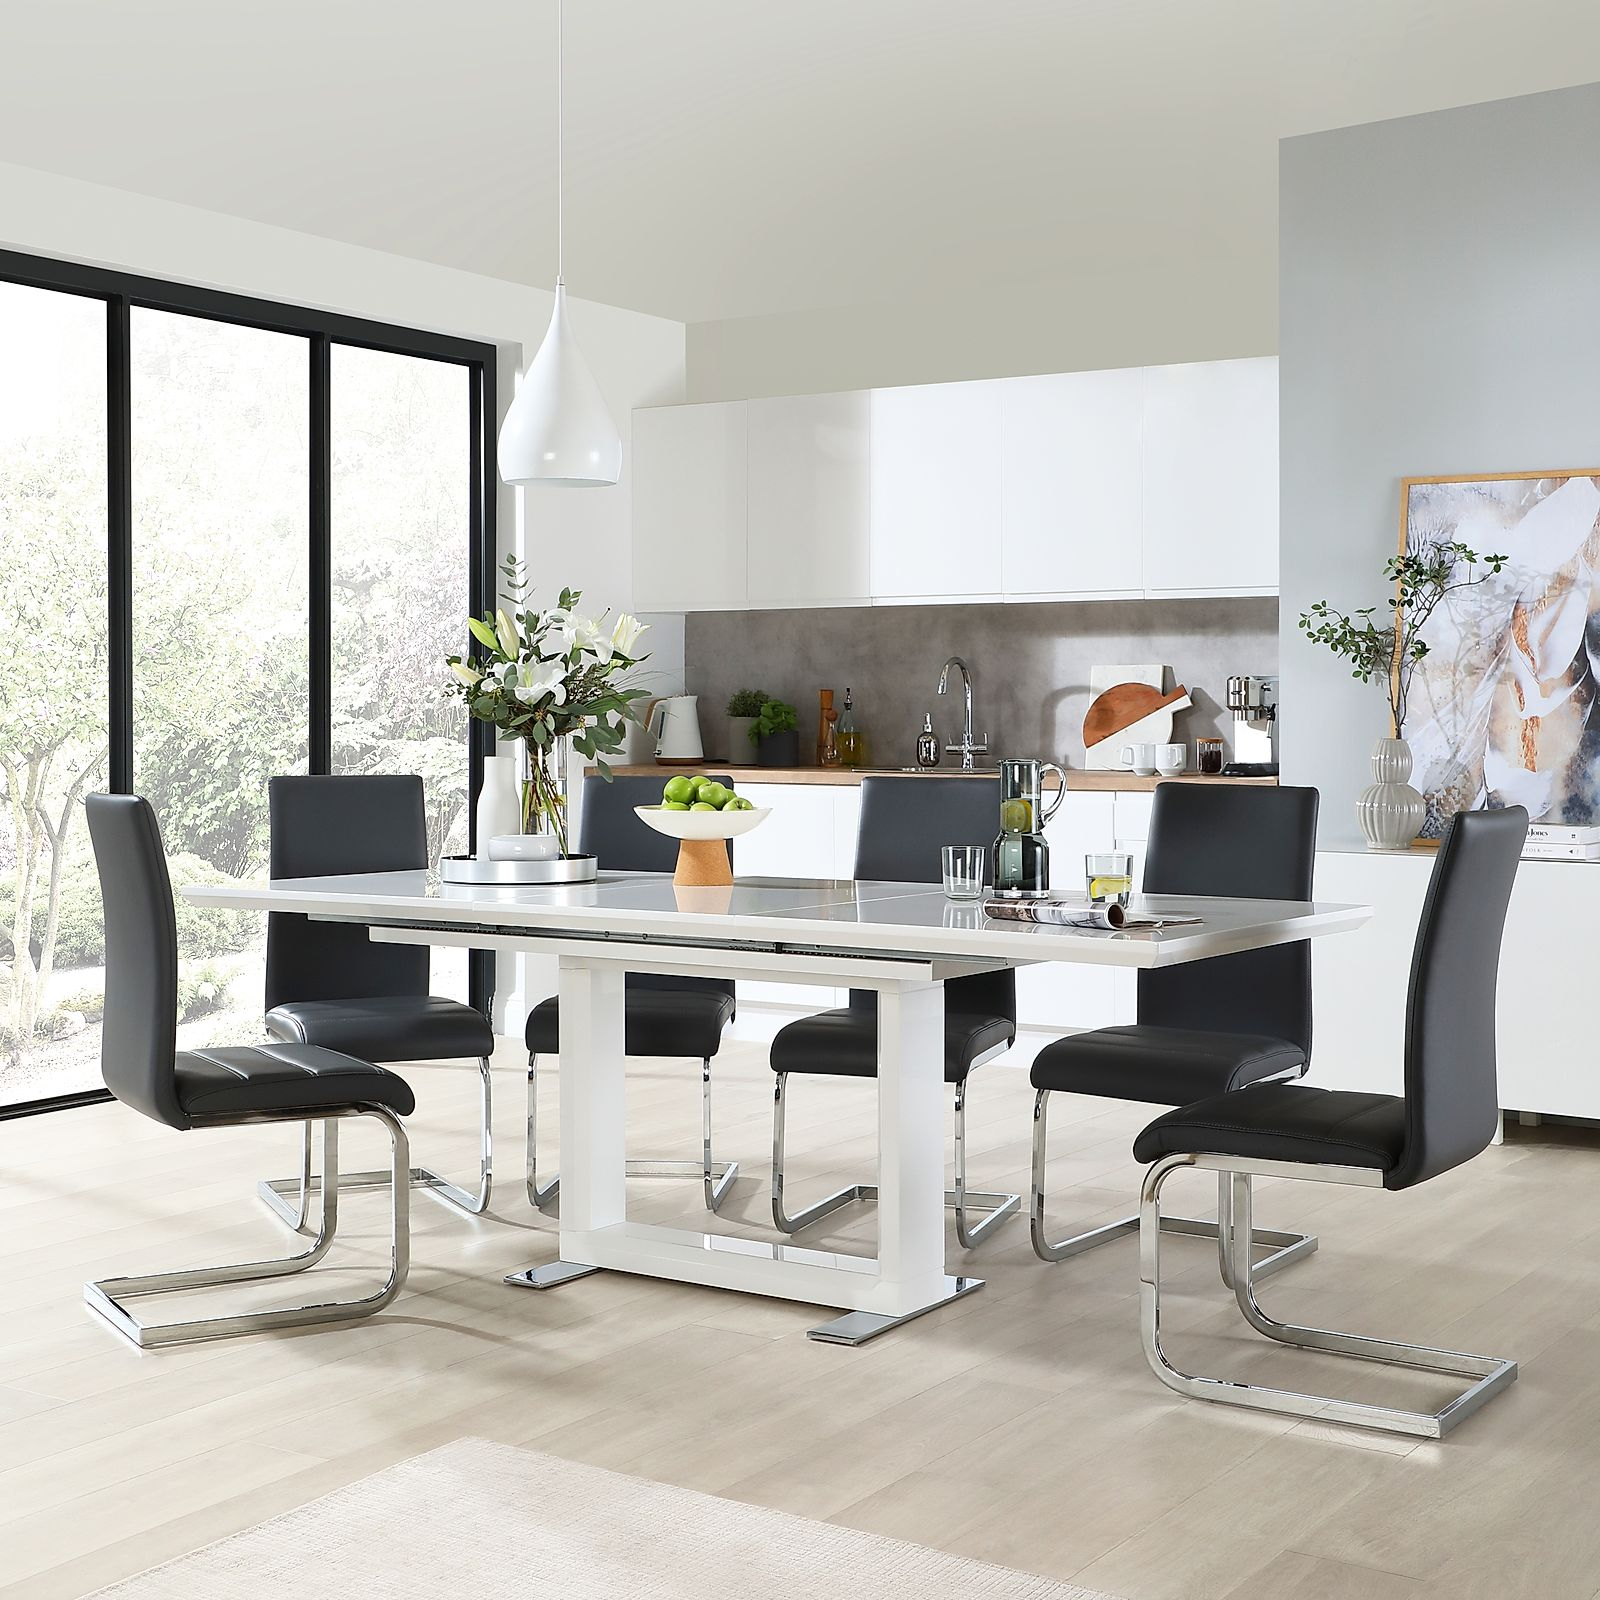 Awesome Tokyo White High Gloss Extending Dining Table With 8 Perth Grey Leather Chairs Dailytribune Chair Design For Home Dailytribuneorg